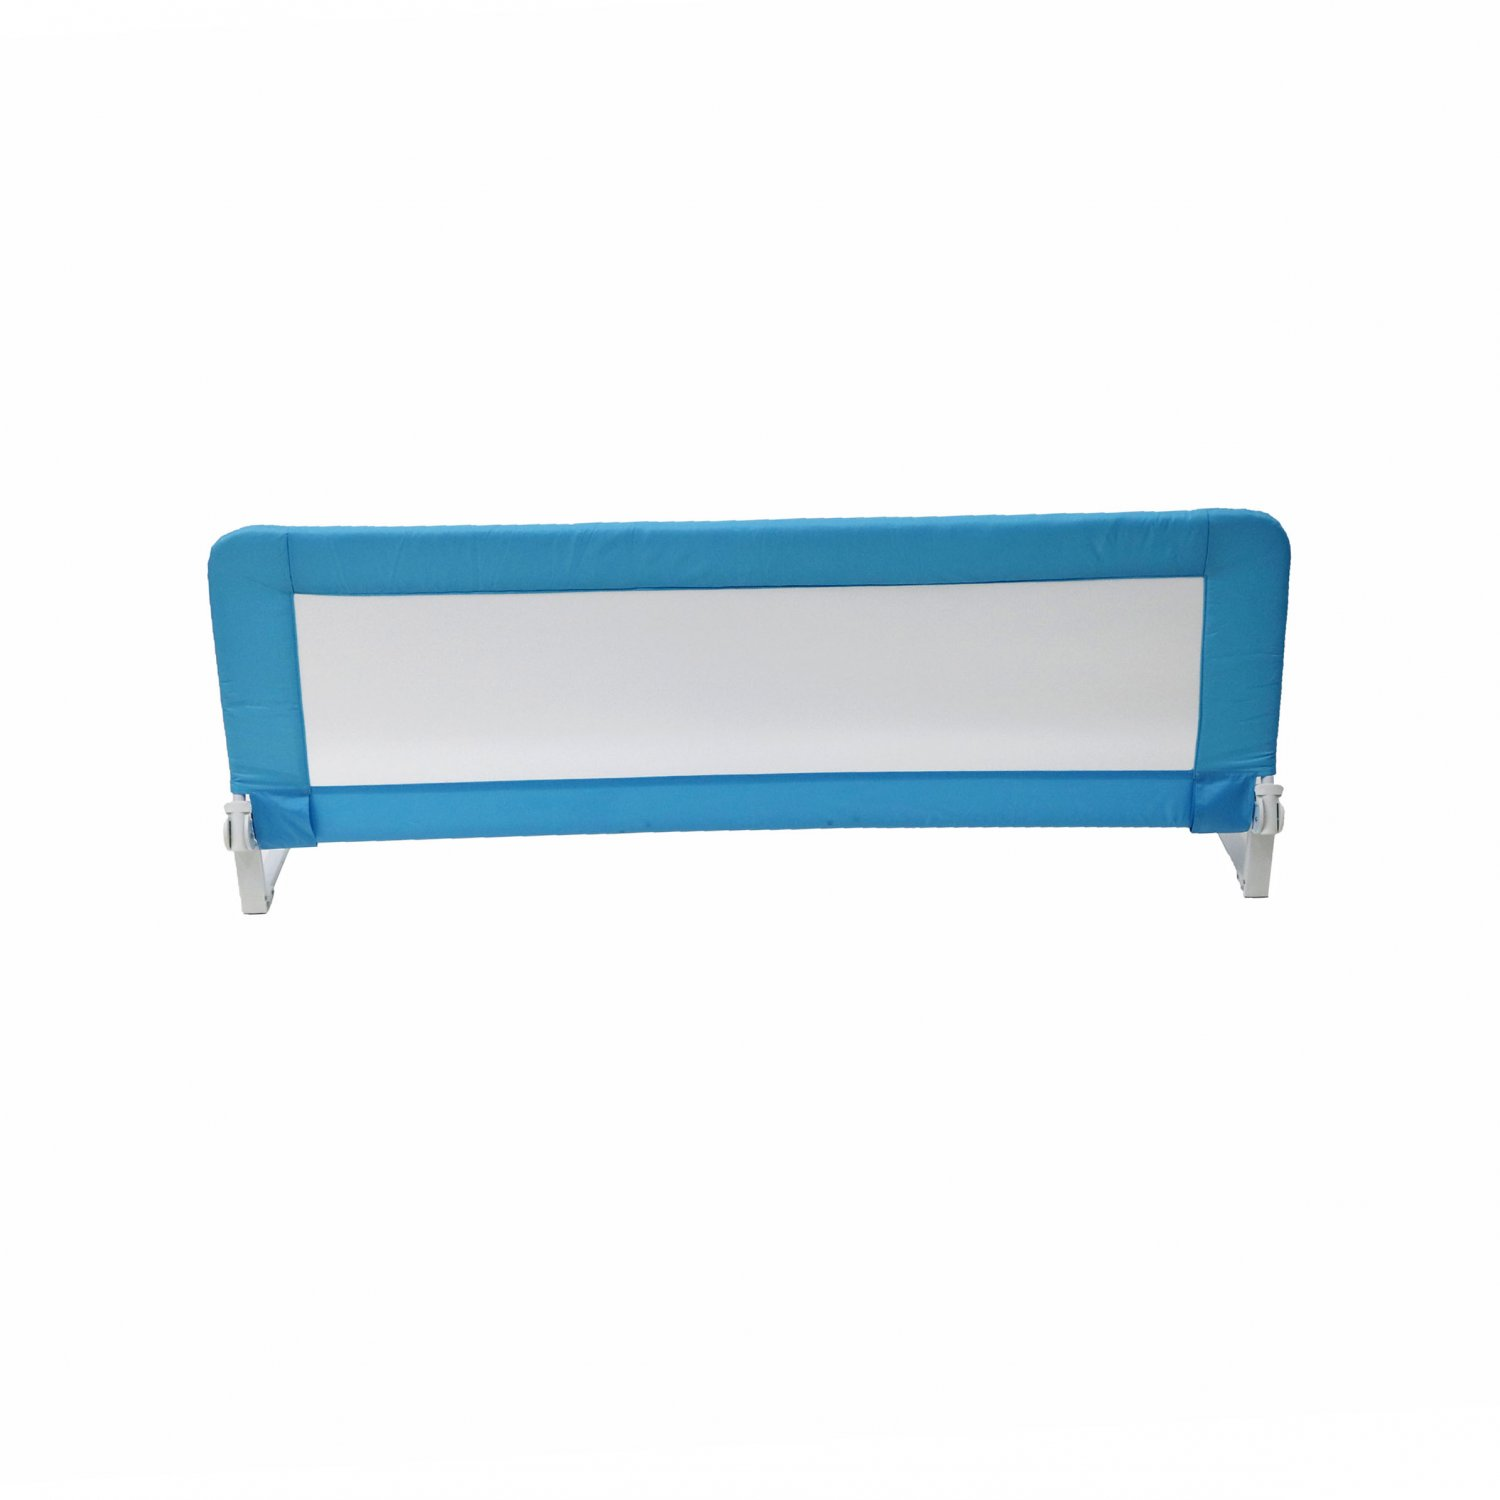 150cm Blue Baby Child Toddler Bed Rail Safety Protection ...